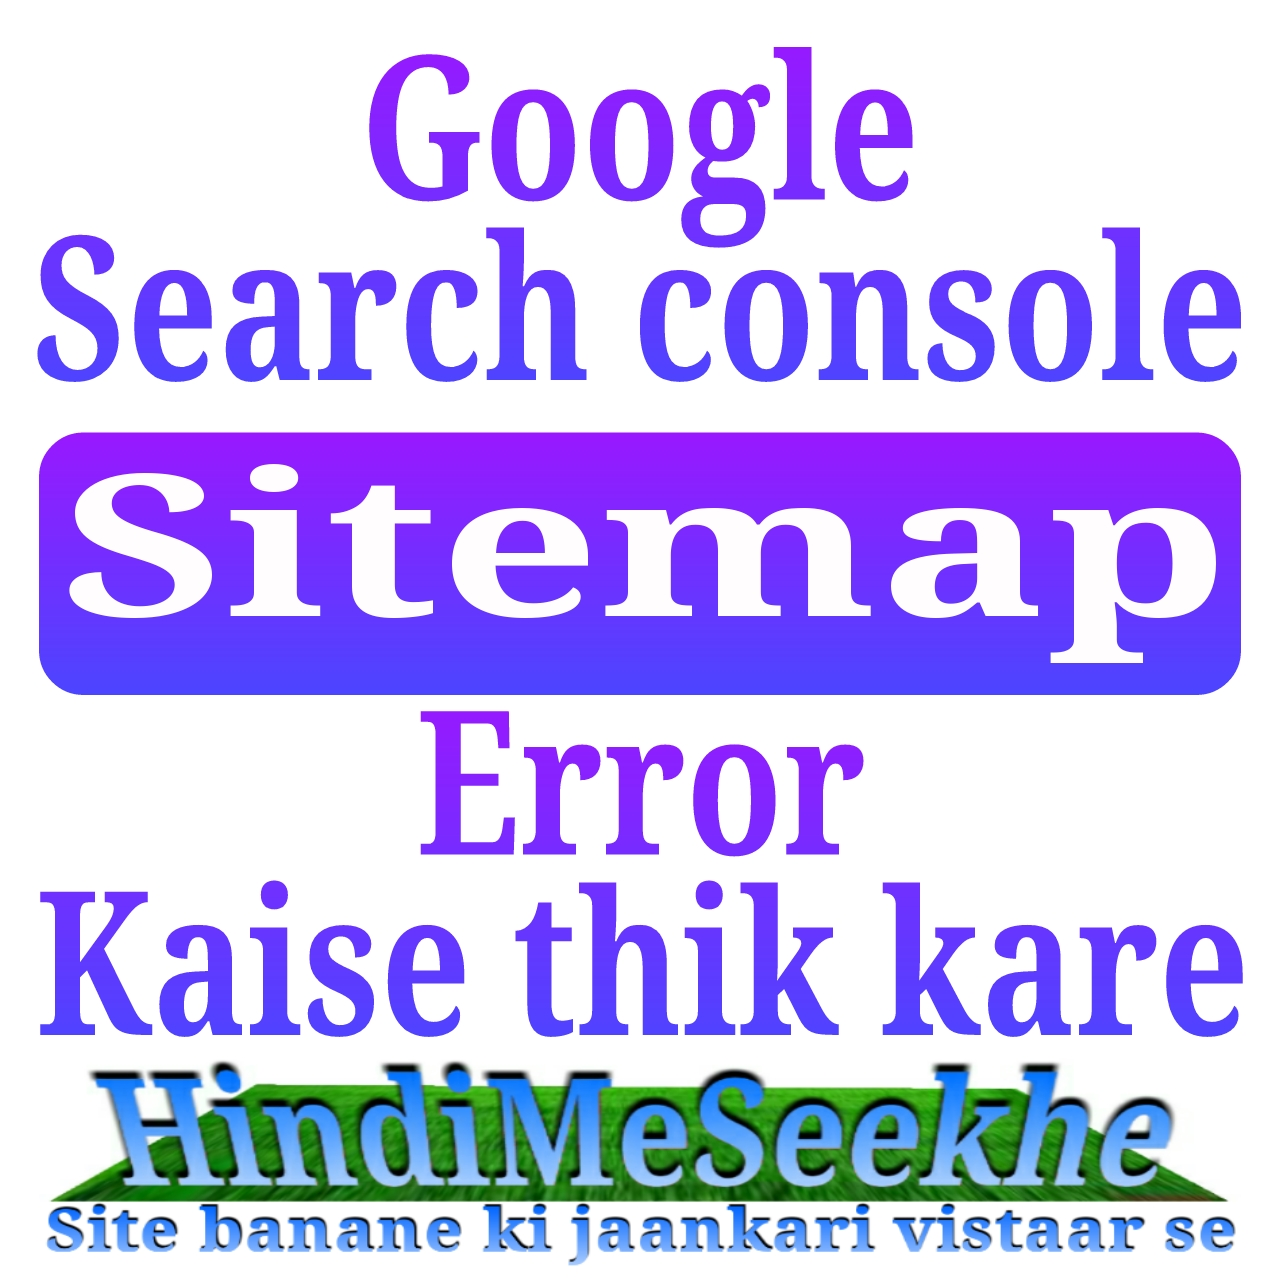 Google search console, sitemap error kaise fix kare. 1